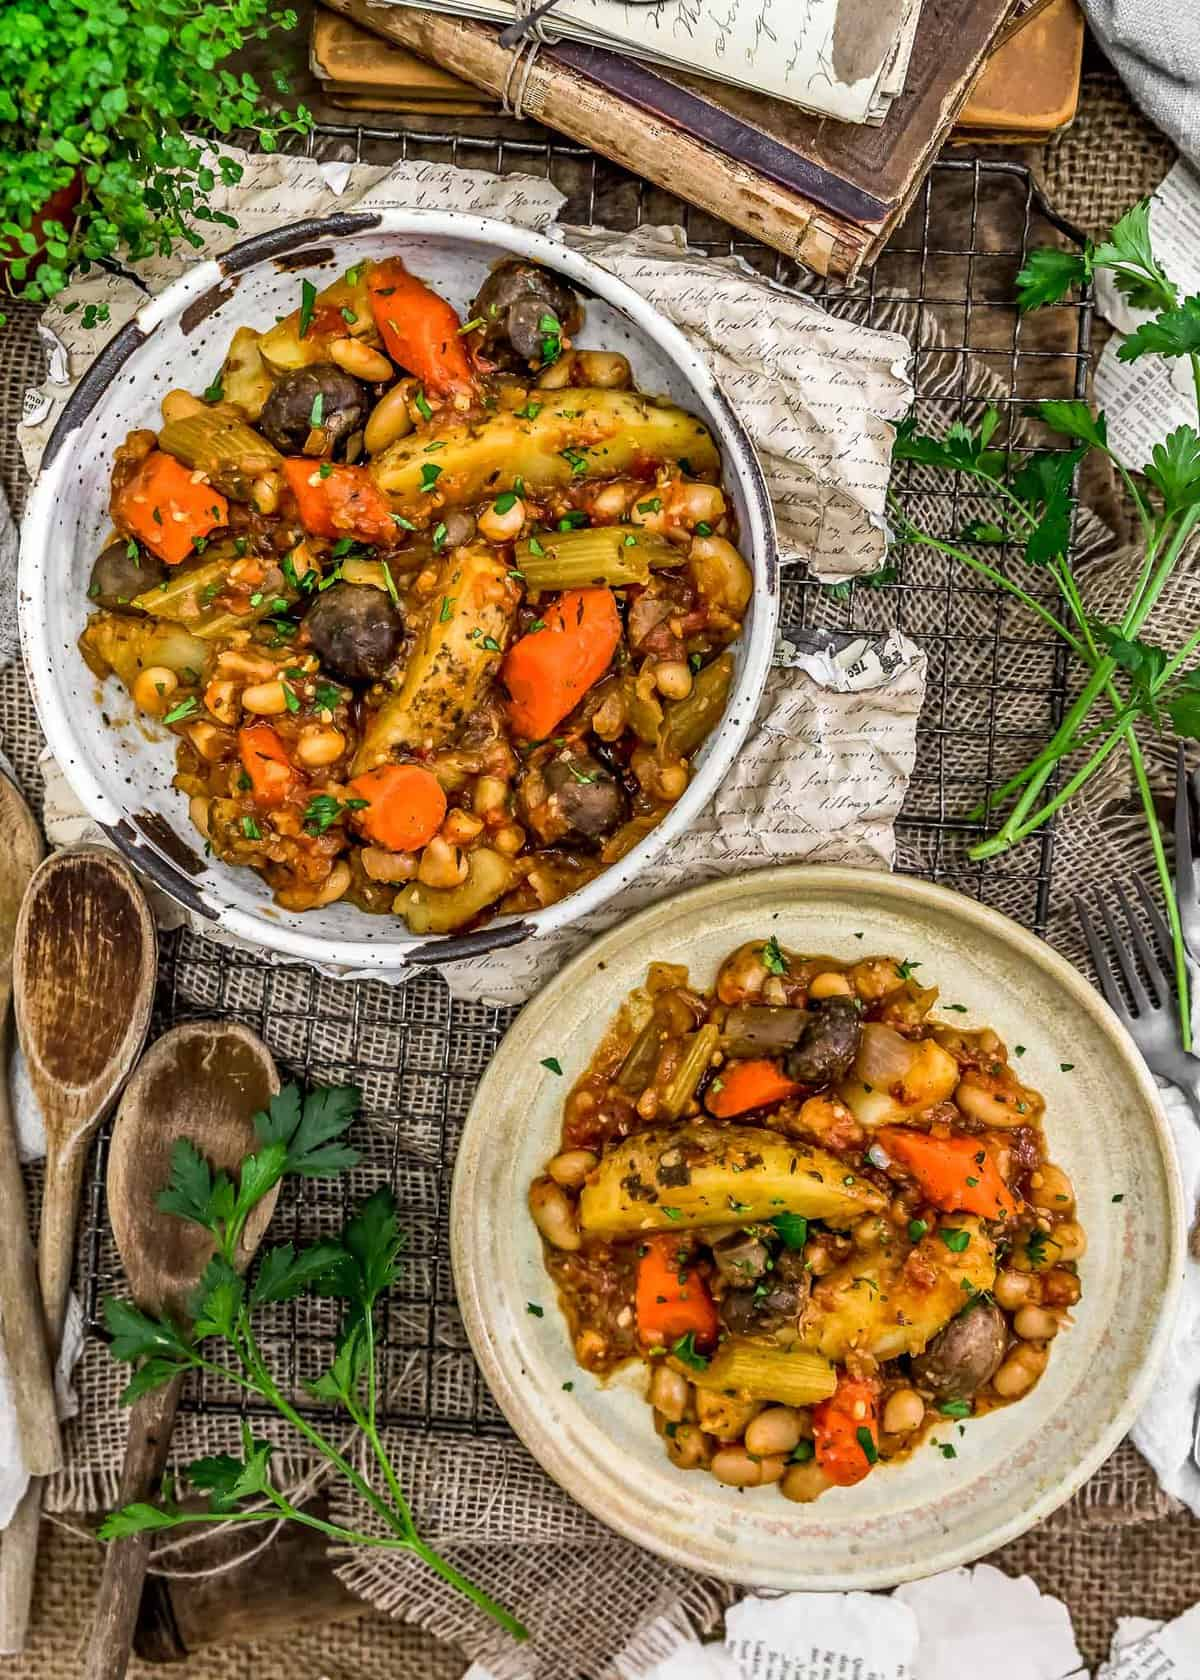 Tablescape of French Country Veggie Stew